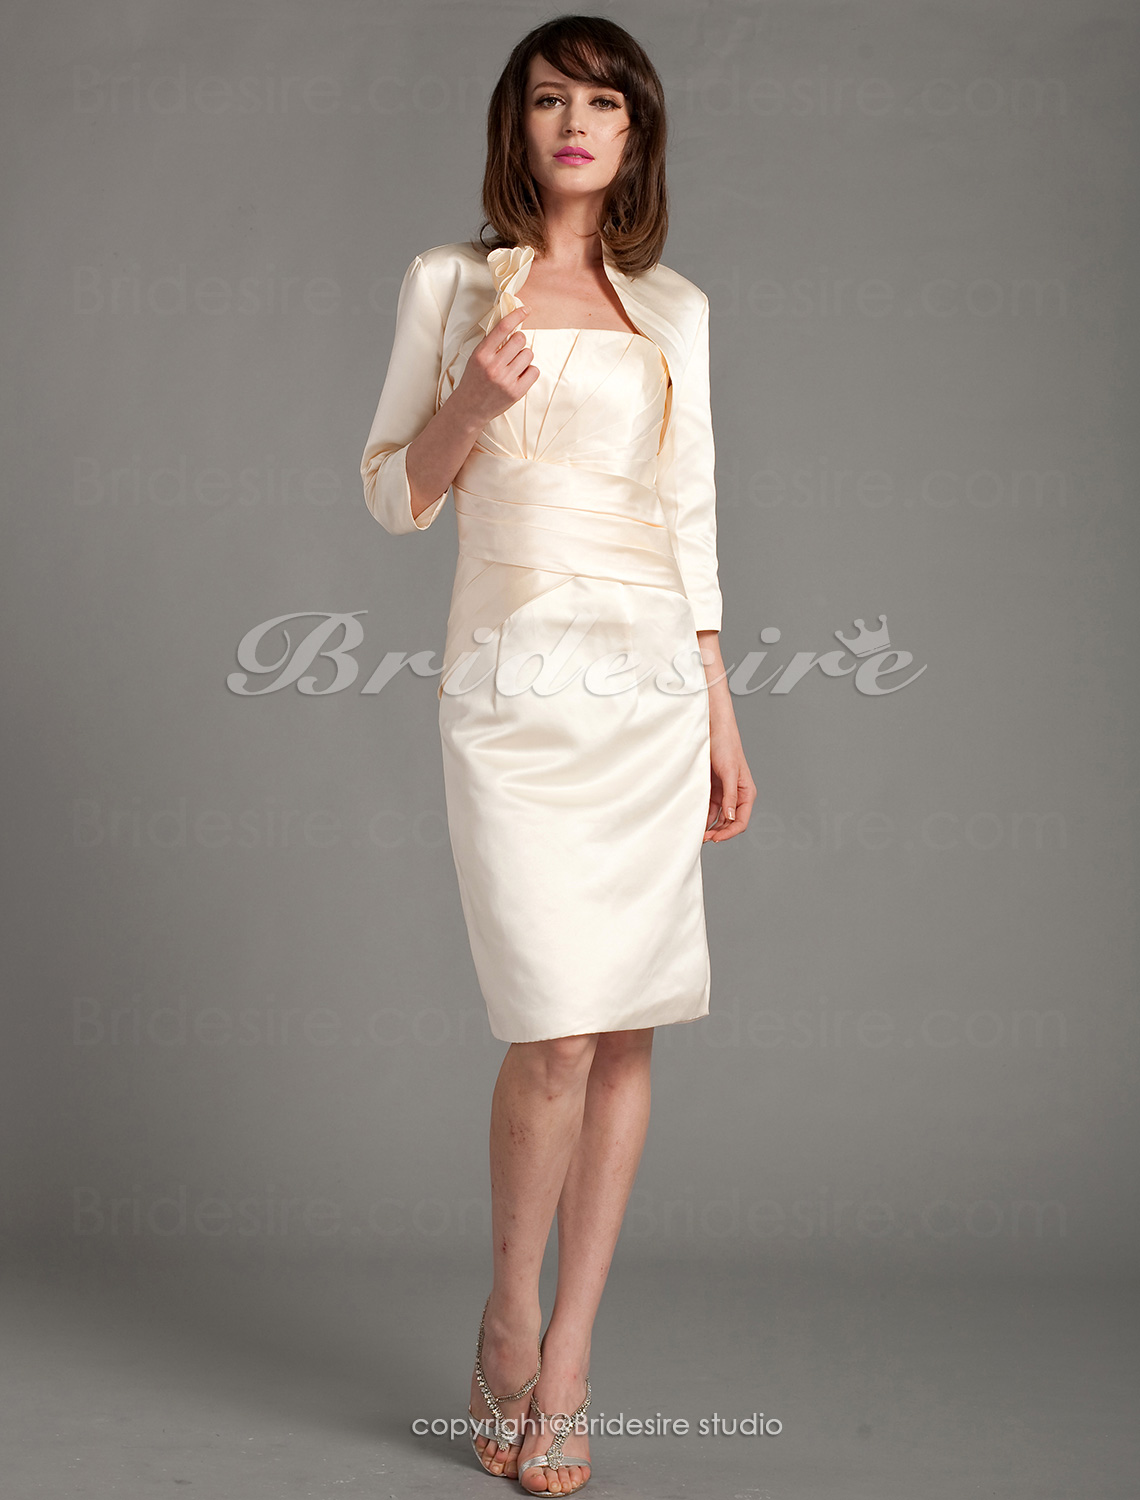 Sheath/Column 3/4 Length Sleeve Strapless Satin Knee-length Home